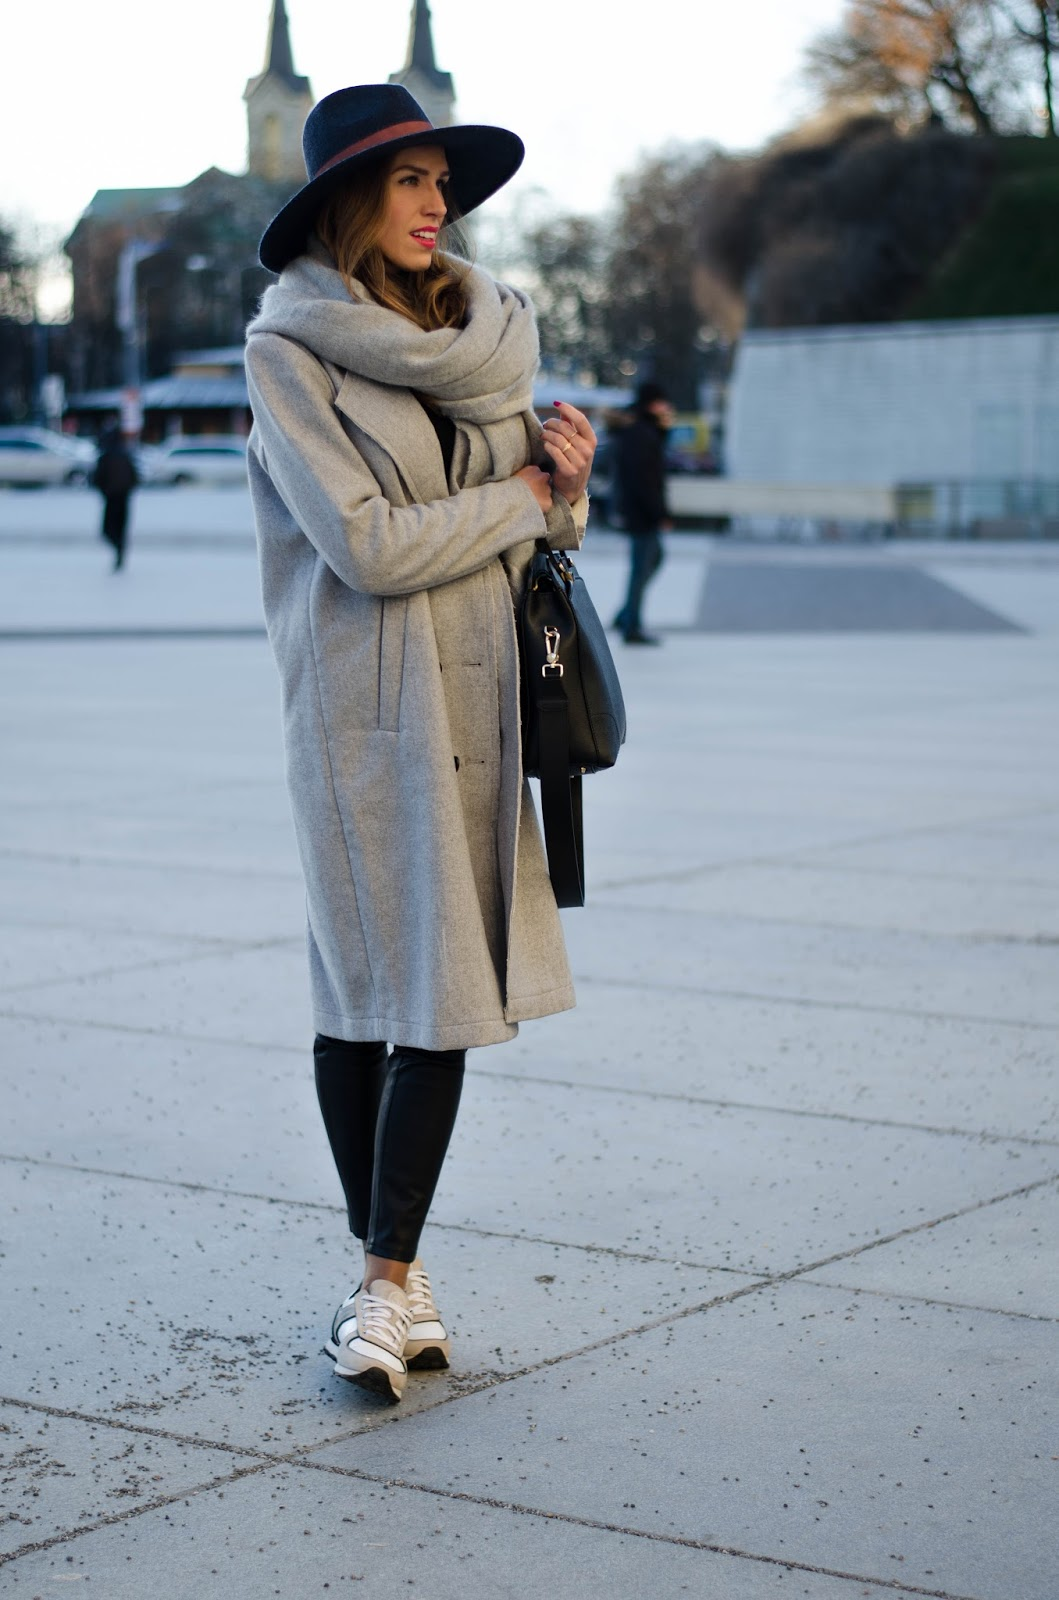 kristjaana mere vila gray wool coat white sneakers fedora winter outfit